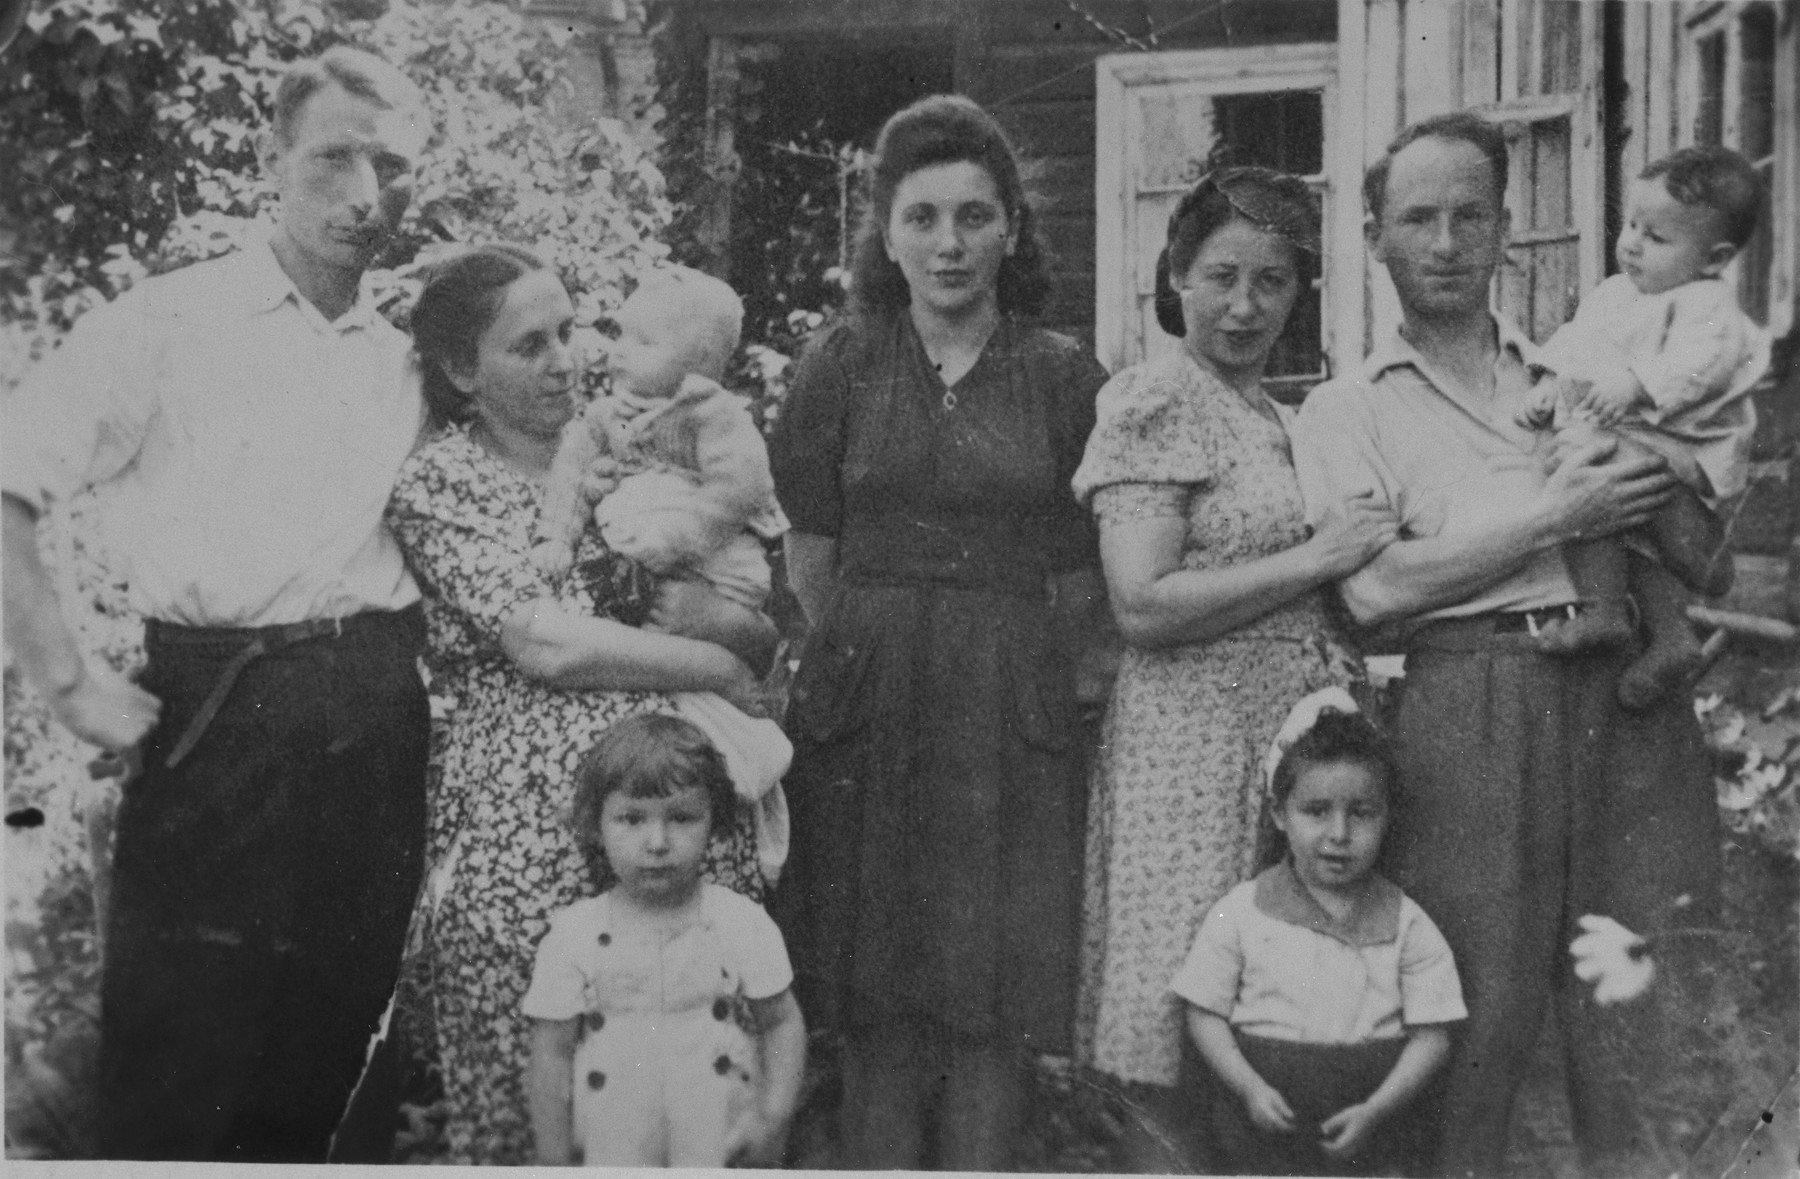 Jewish DP couples pose with their young children outside a home in Minsk.  Pictured are Israel and Julia Matz with their sons Boris and Shaul (at the right), and Lowa and Chaja Lurie with their two children (at the left).